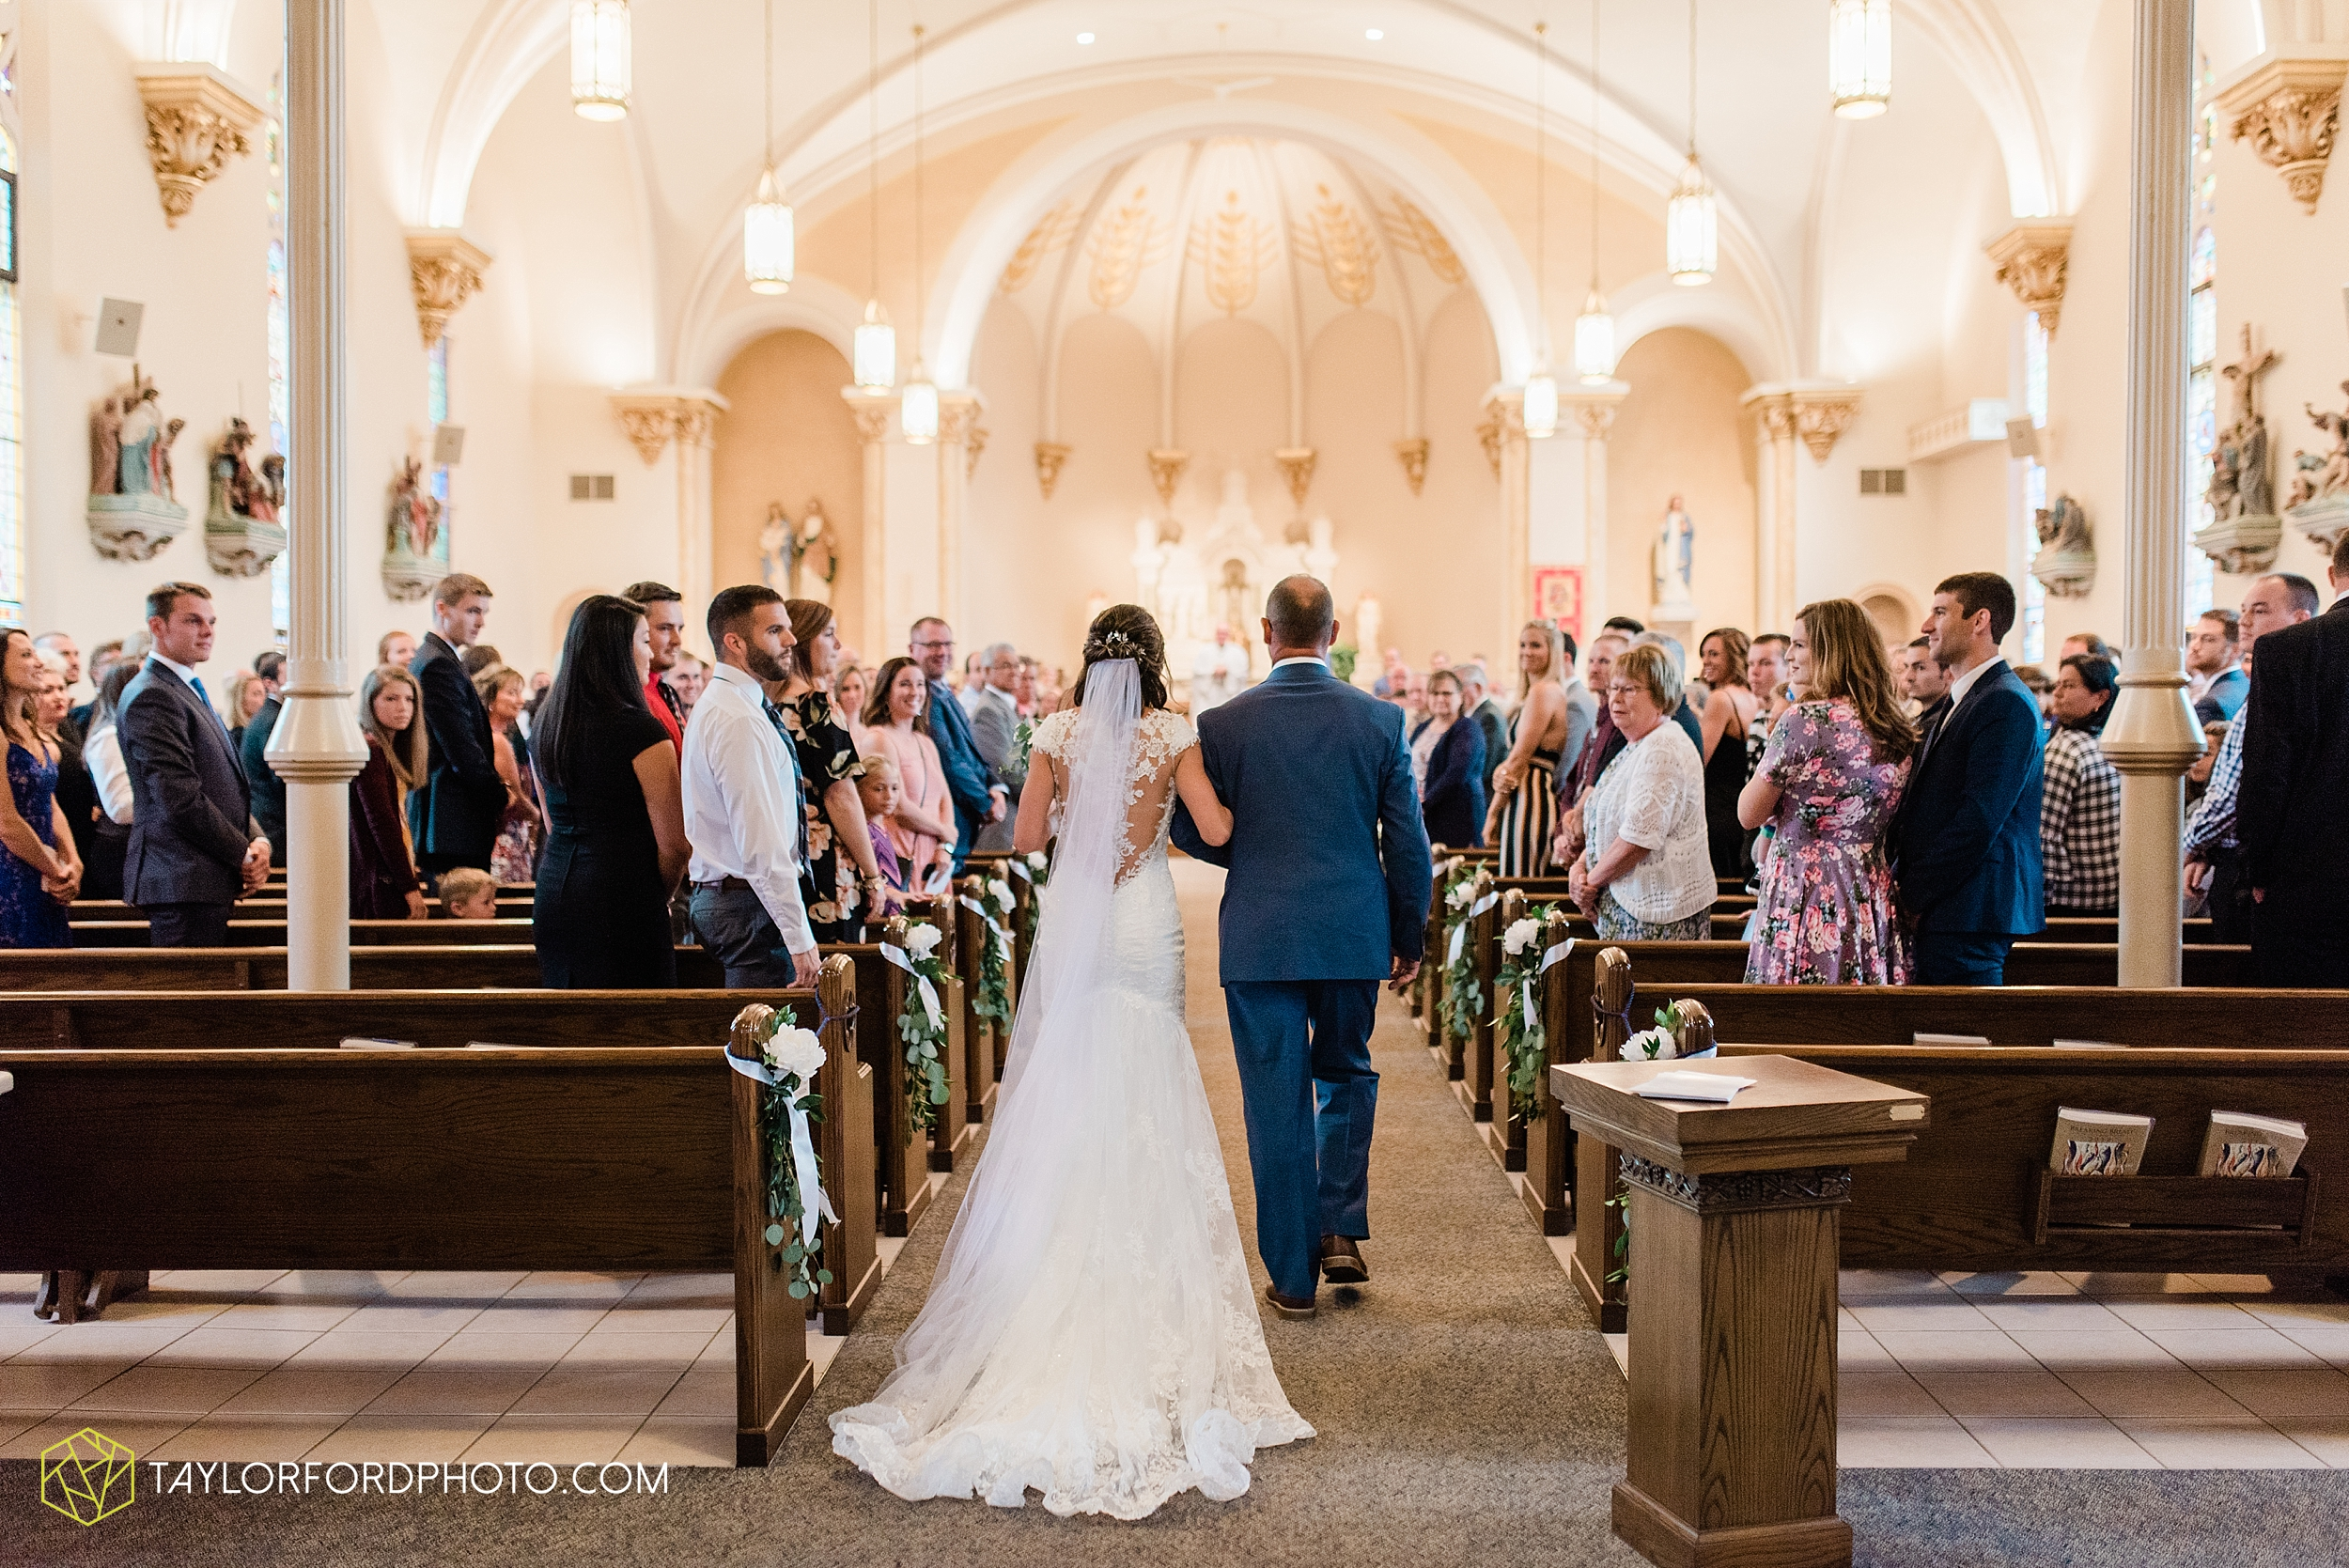 kacee-haden-sholl-second-story-saint-marys-knights-of-columbus-defiance-ohio-wedding-photographer-taylor-ford-photography_0150.jpg